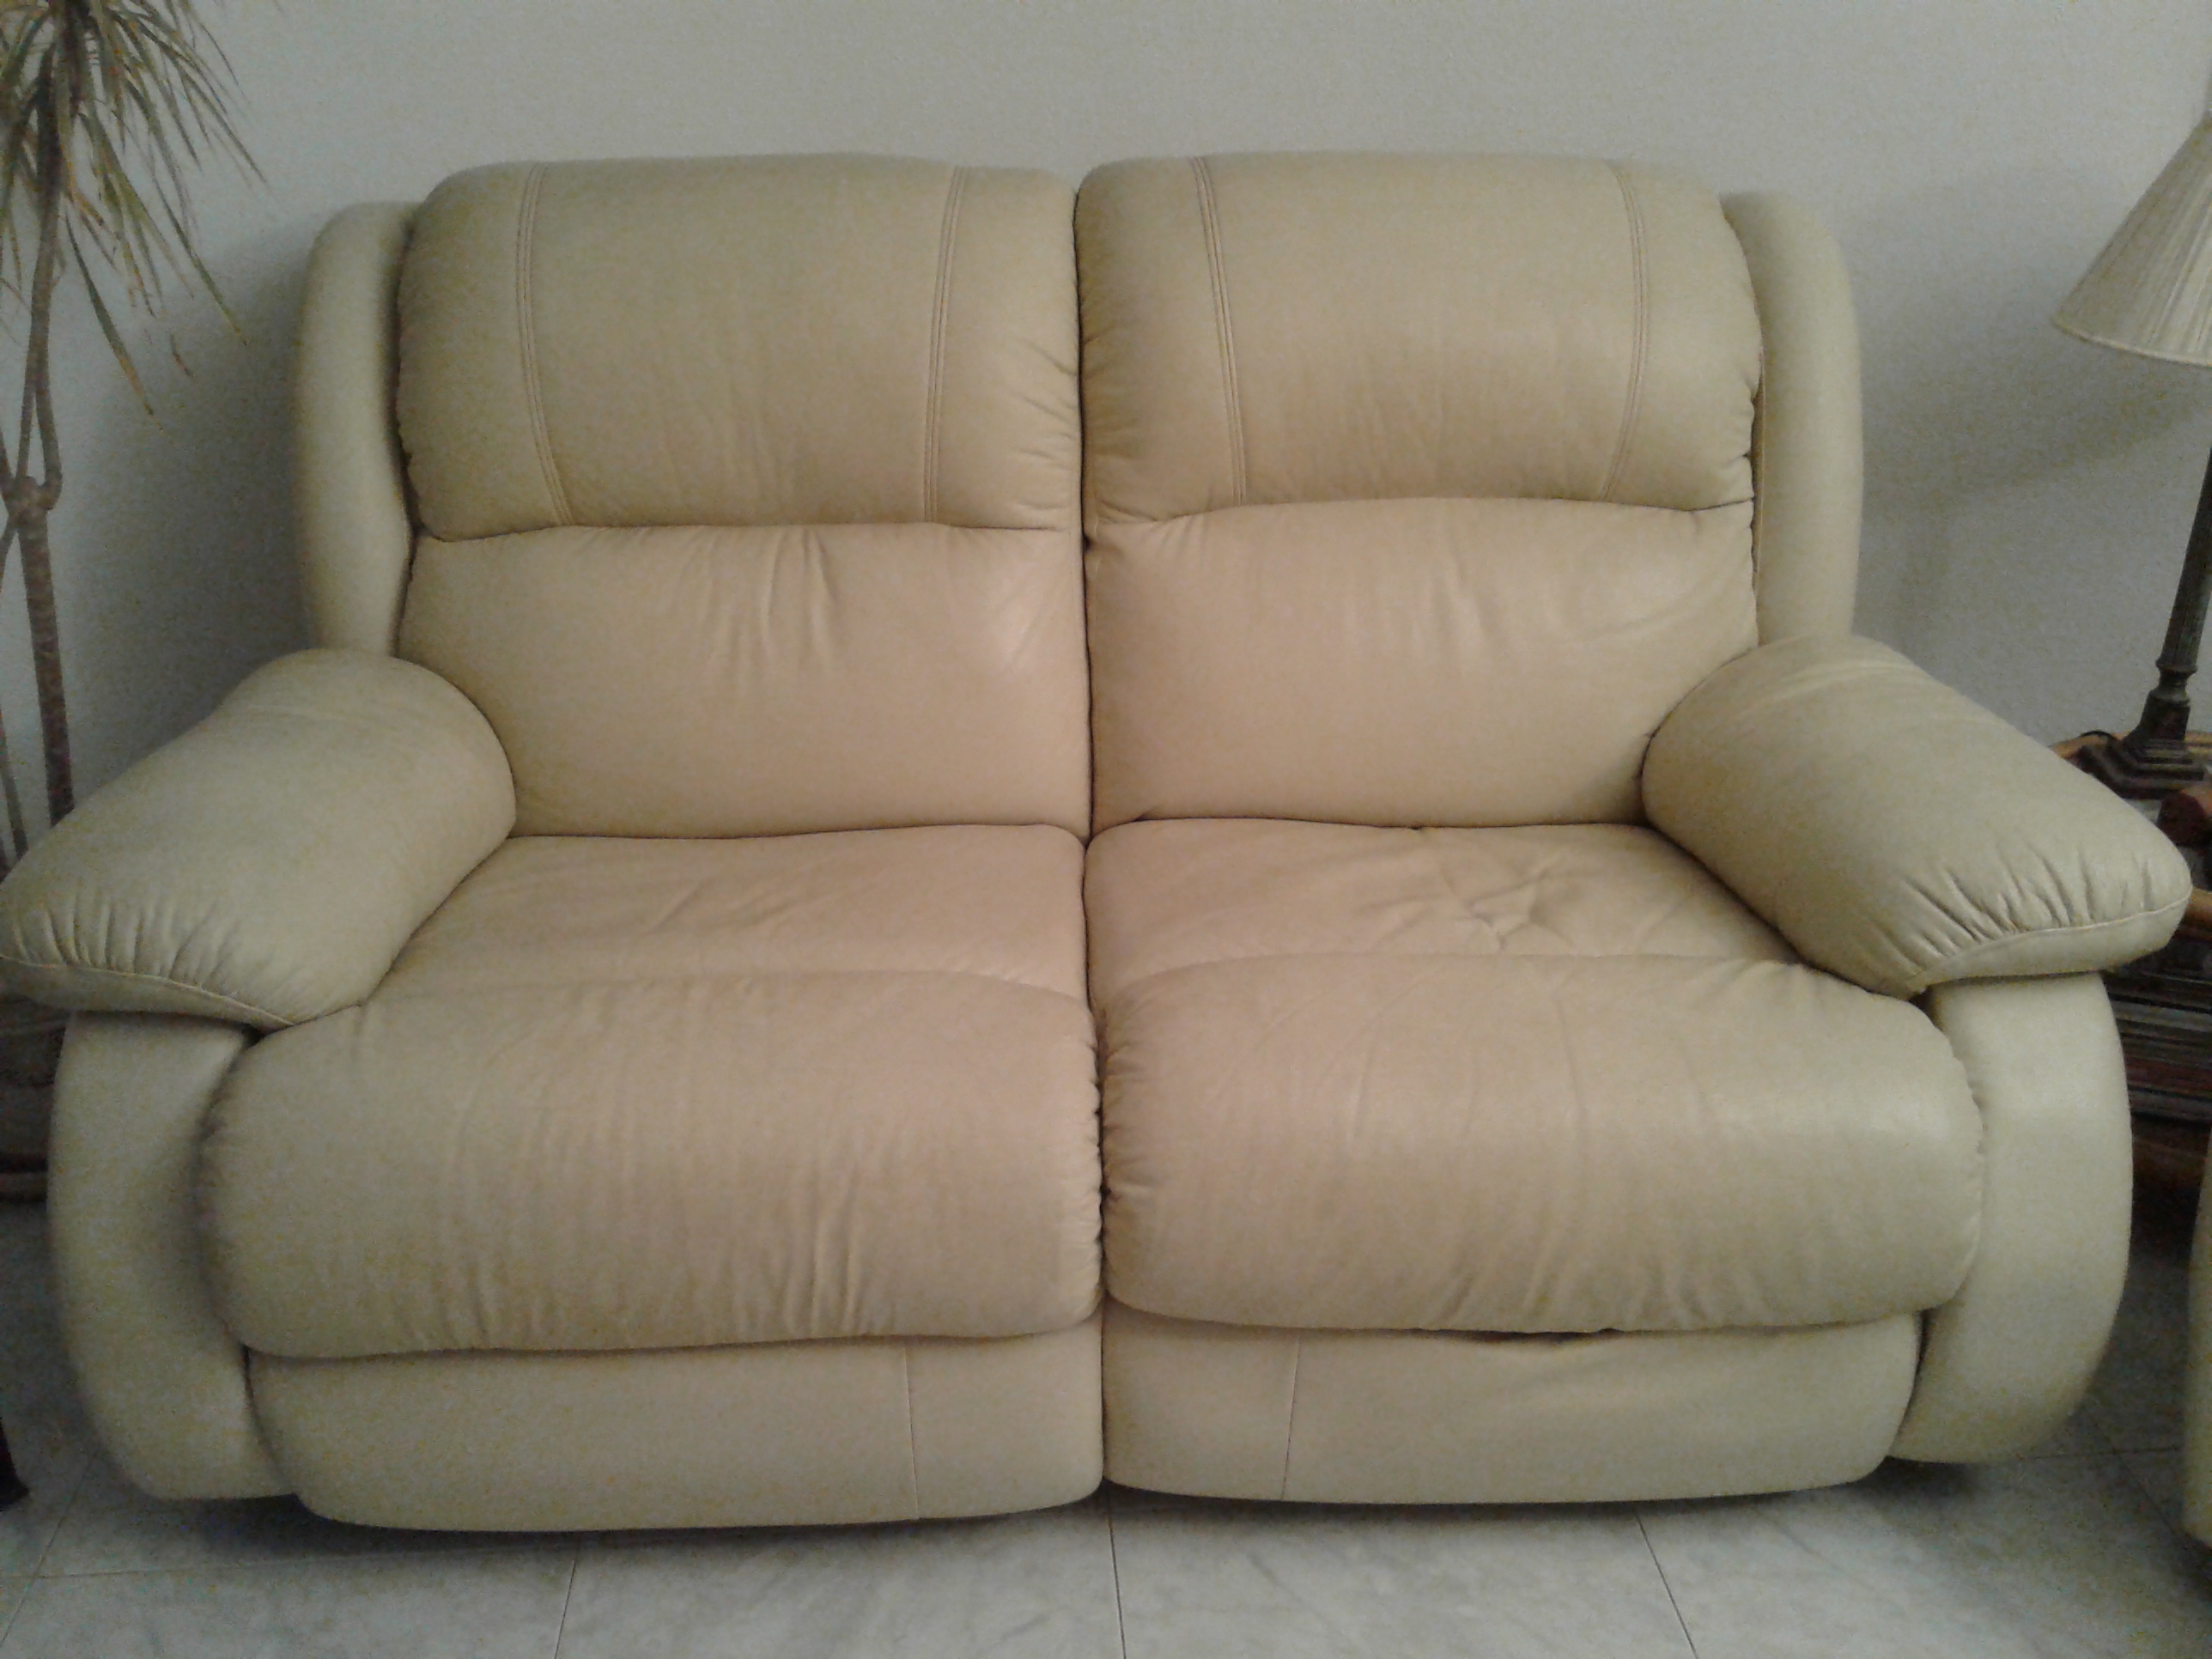 For sale: Leather 2 seater settee